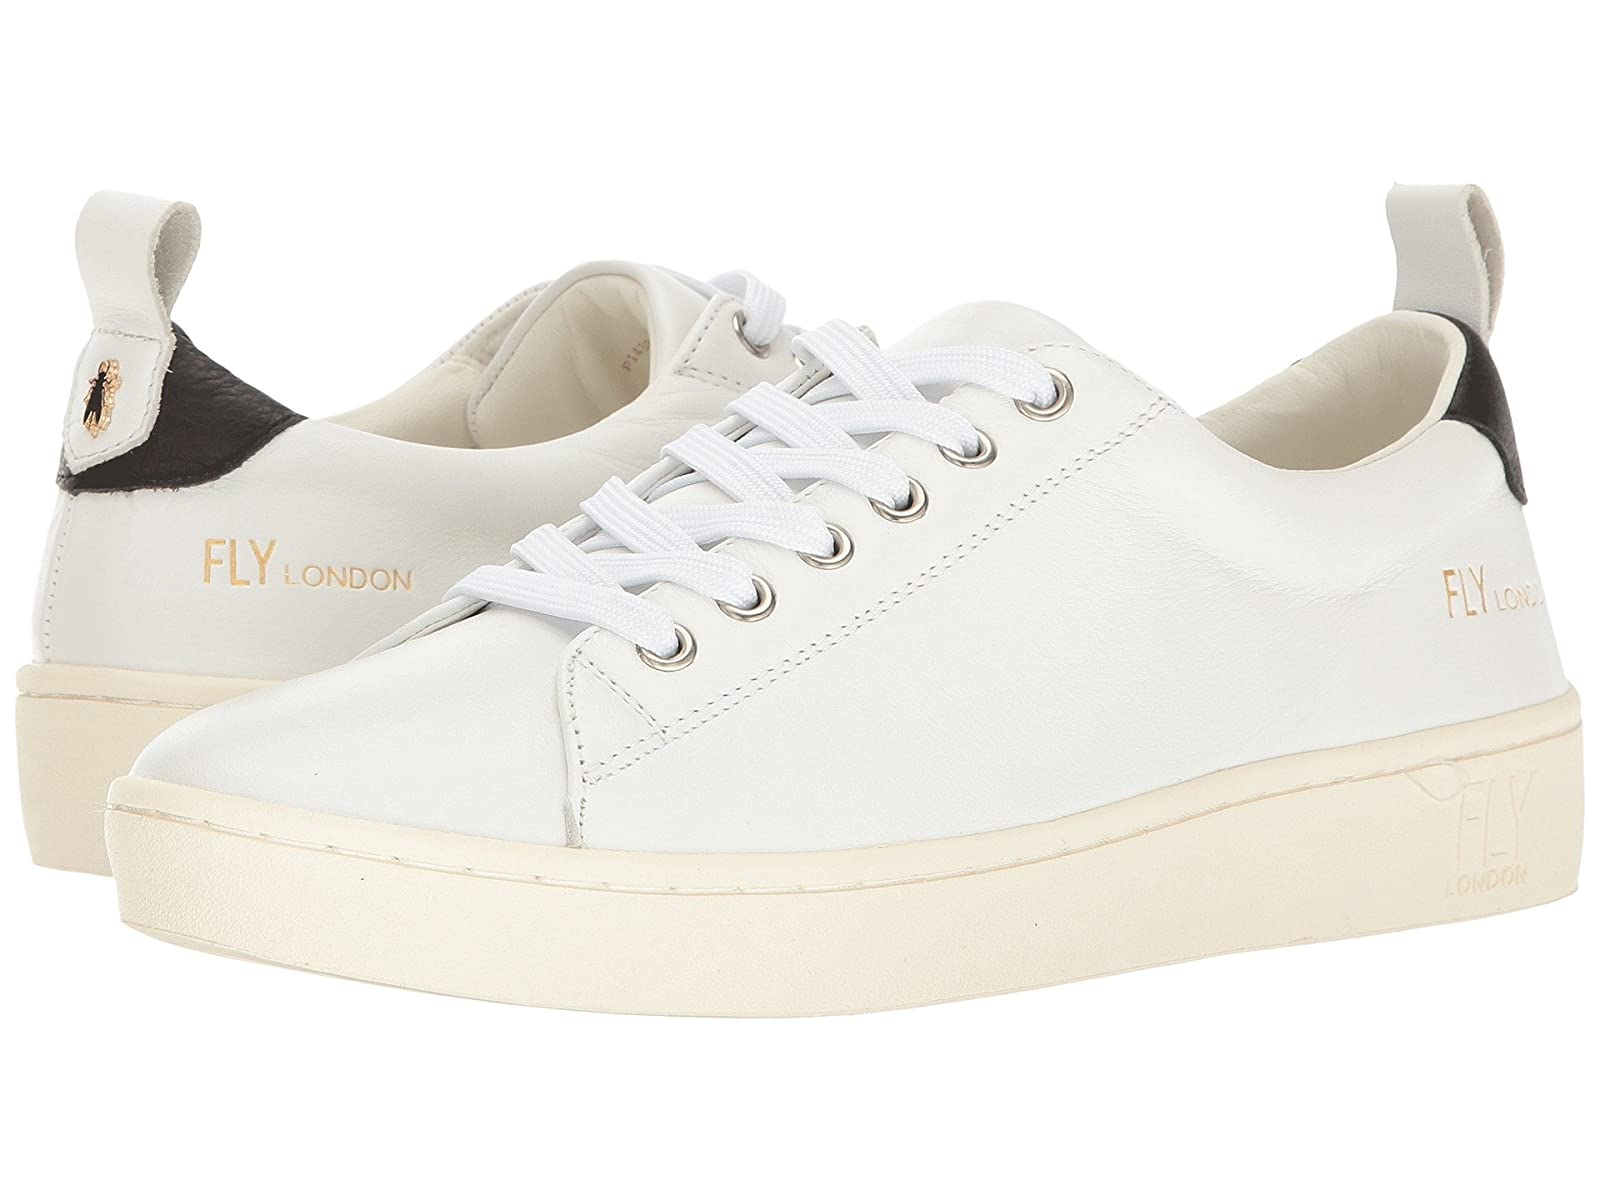 FLY LONDON Maco833FlyCheap and distinctive eye-catching shoes